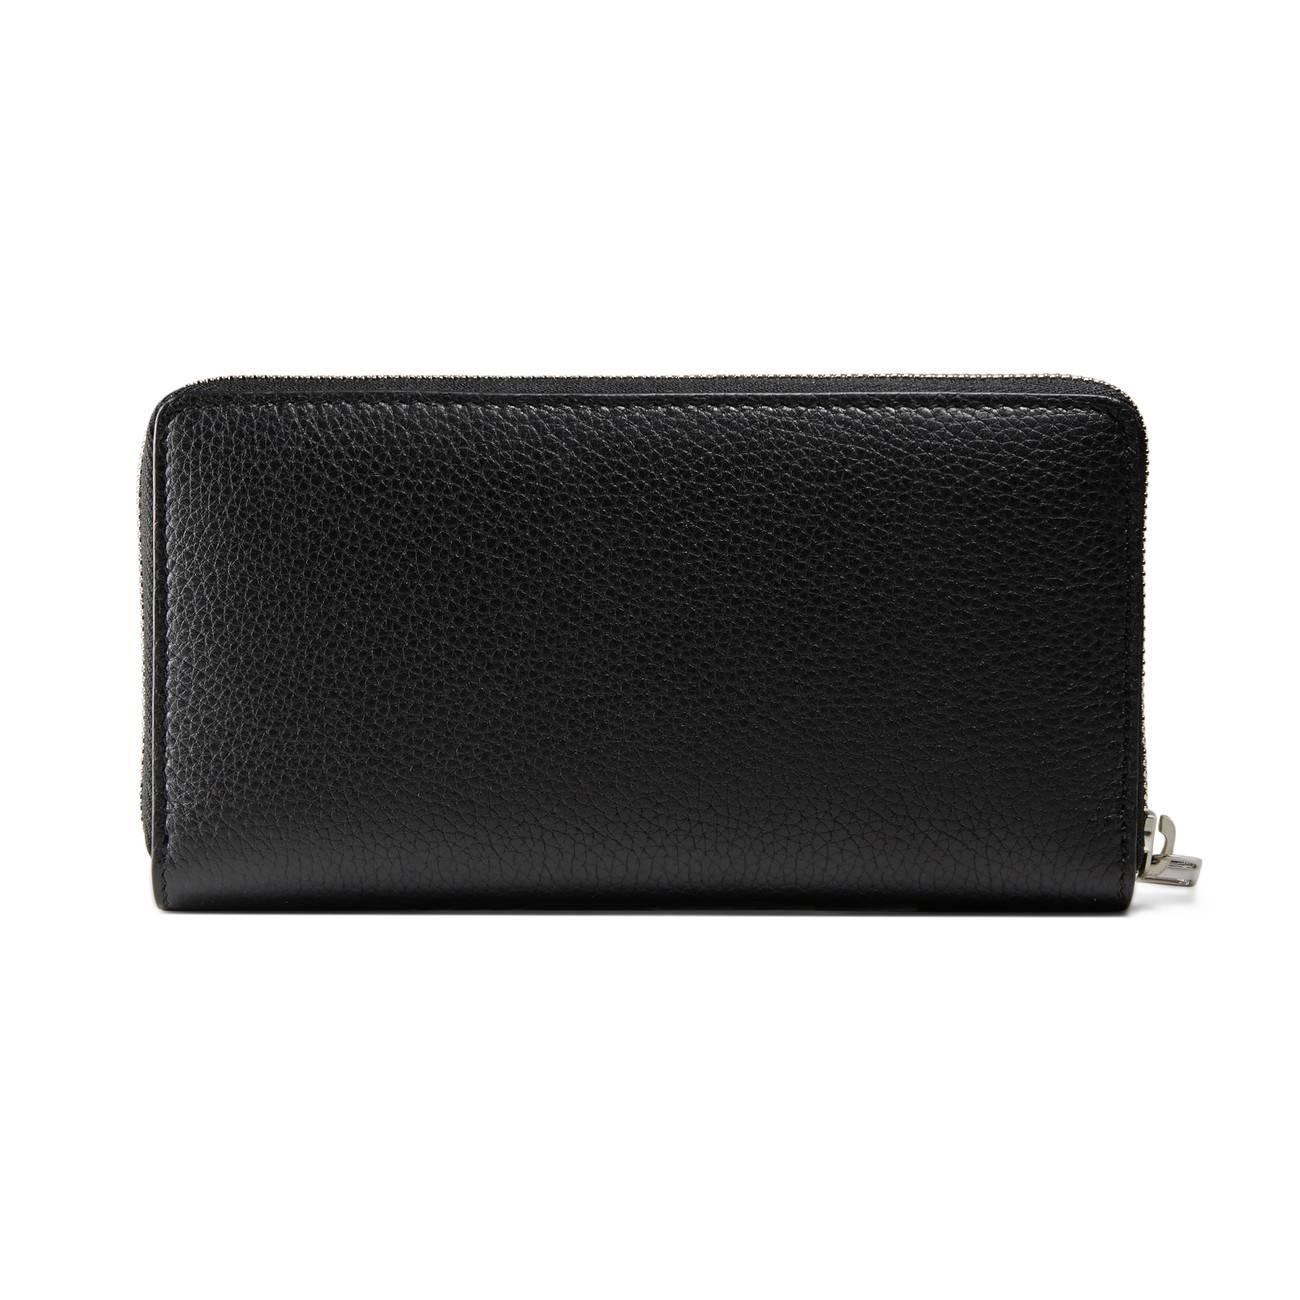 e8d391639b9 Gucci - Black Leather Zip Around Wallet for Men - Lyst. View fullscreen